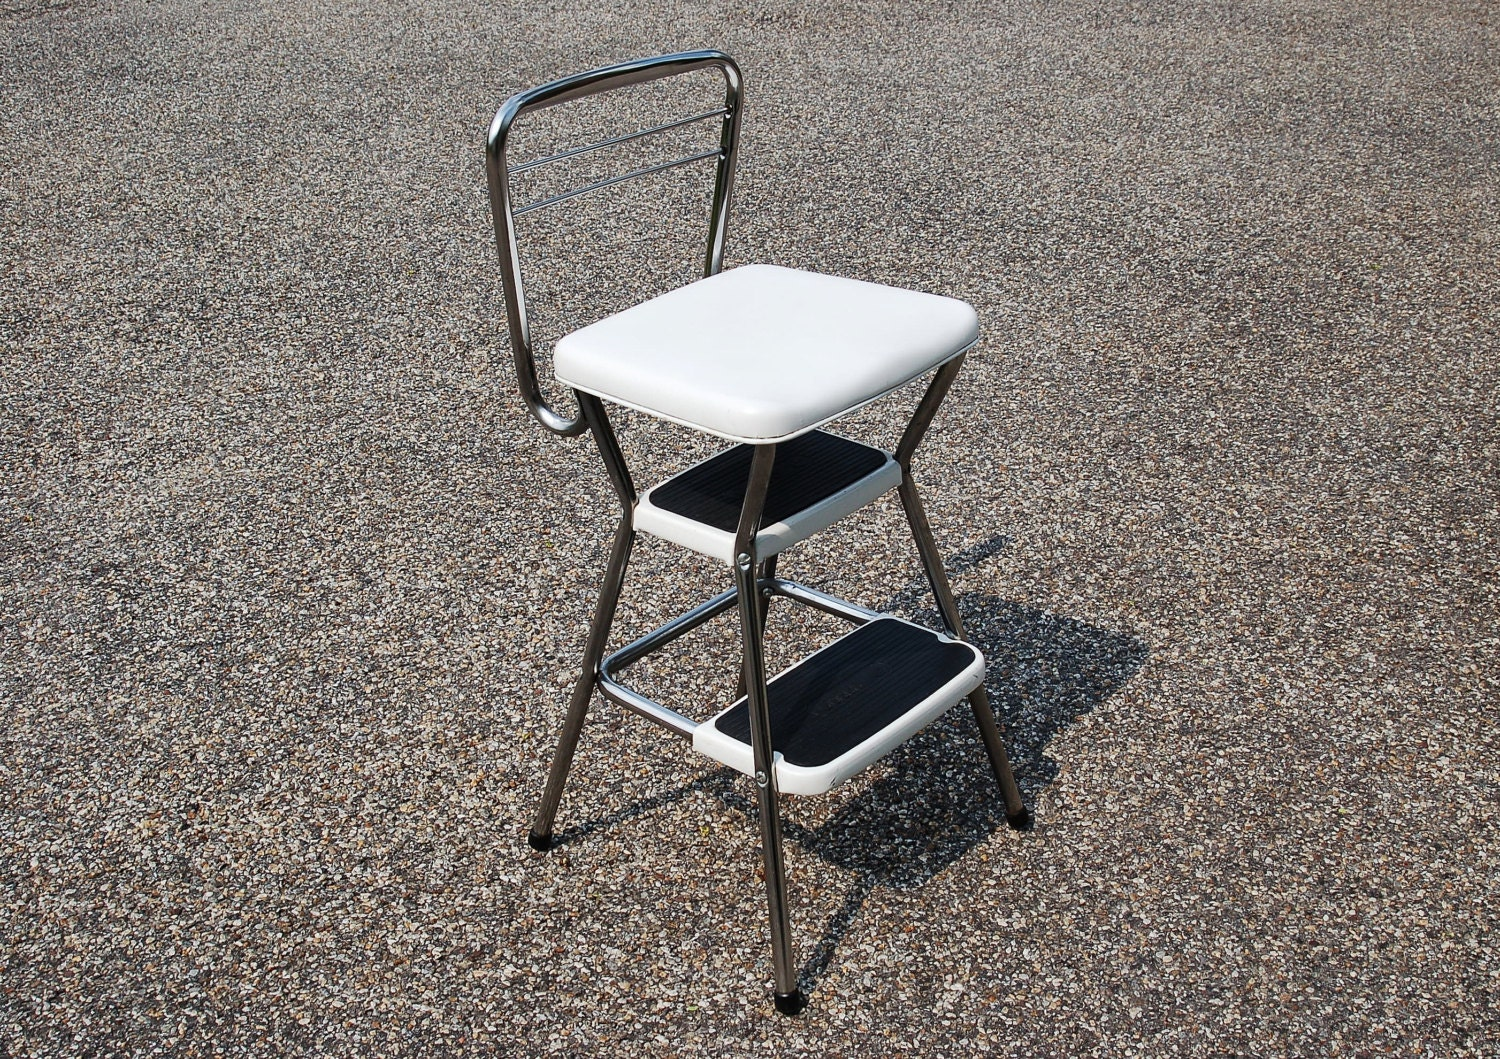 Cosco Chrome Step Stool Chair Combination Mid Century Chrome